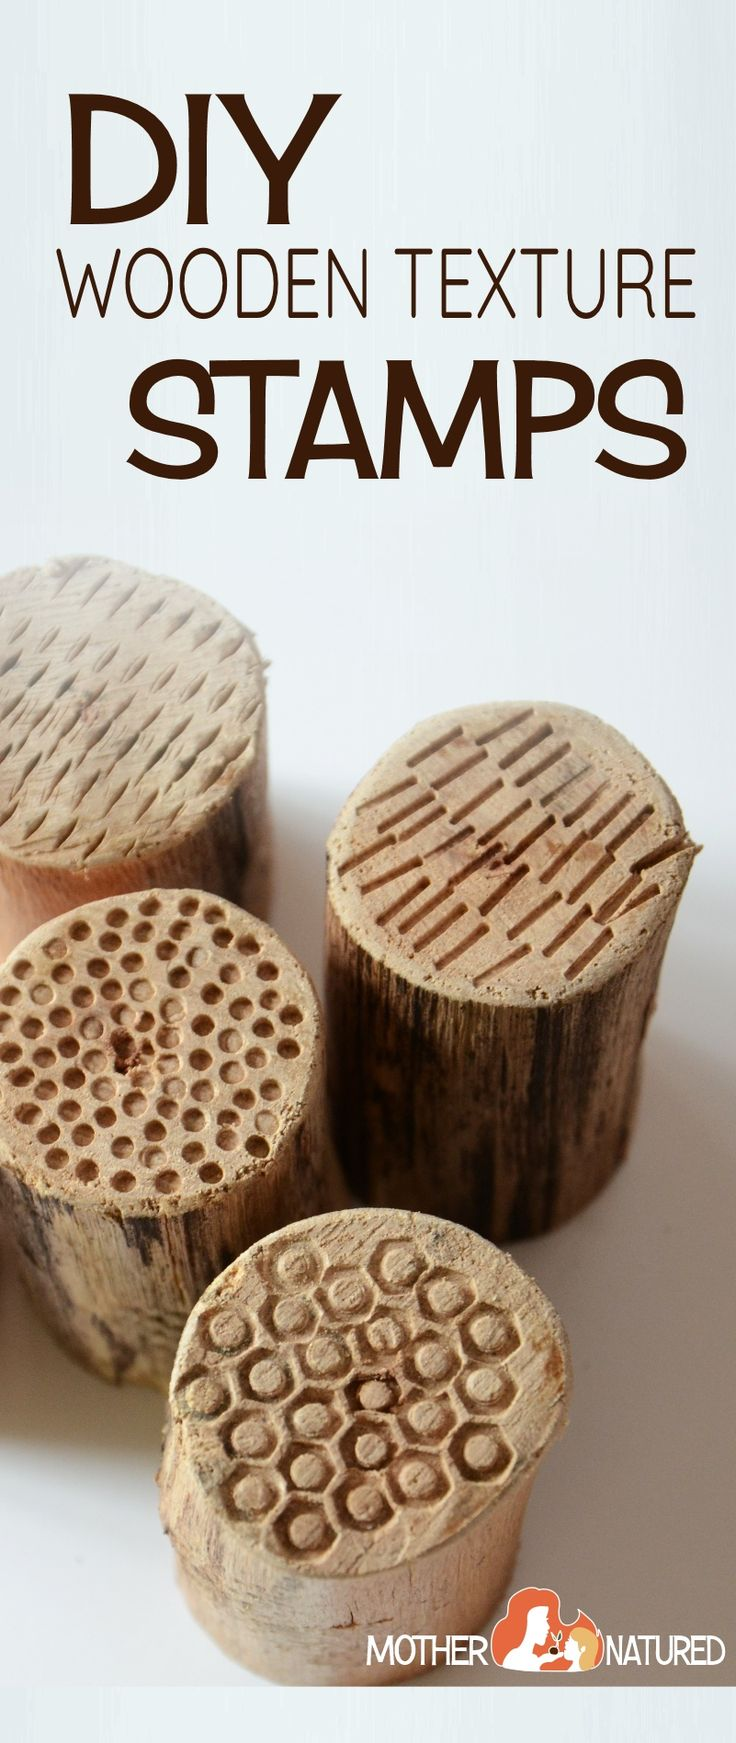 DIY wooden stamps - great project to make for the kids!